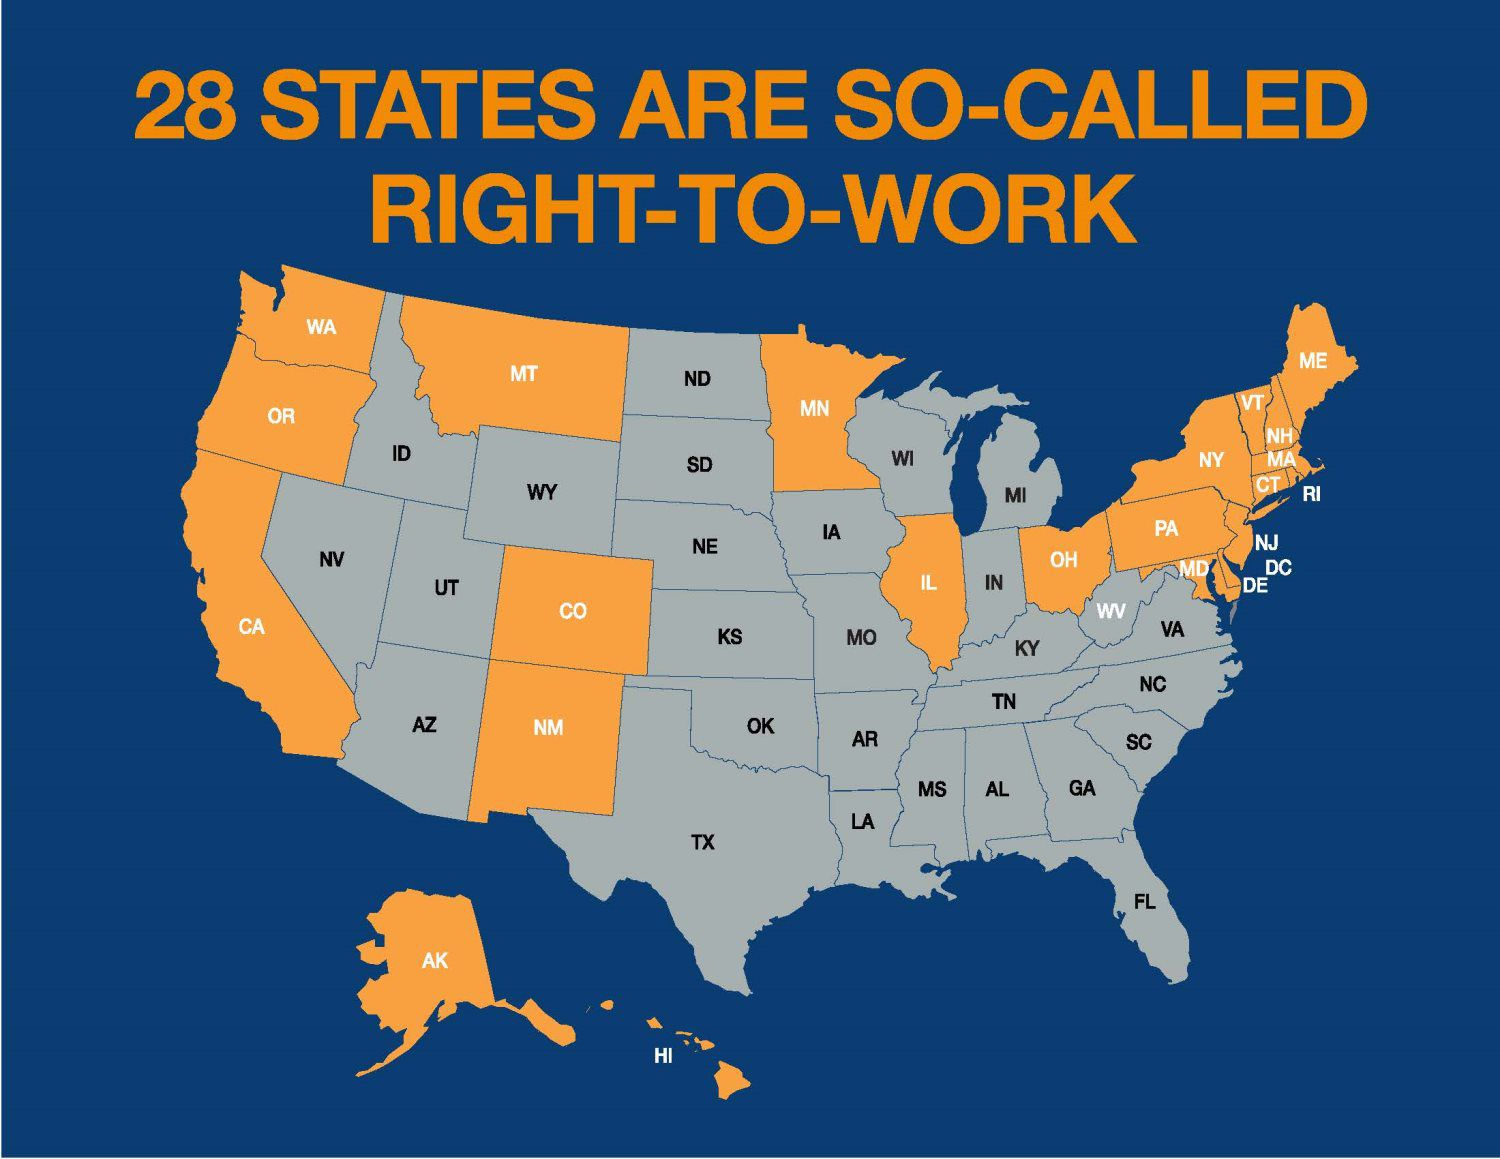 Right To Work States Vs Union States Map.So Called Right To Work Laborers International Union Of North America